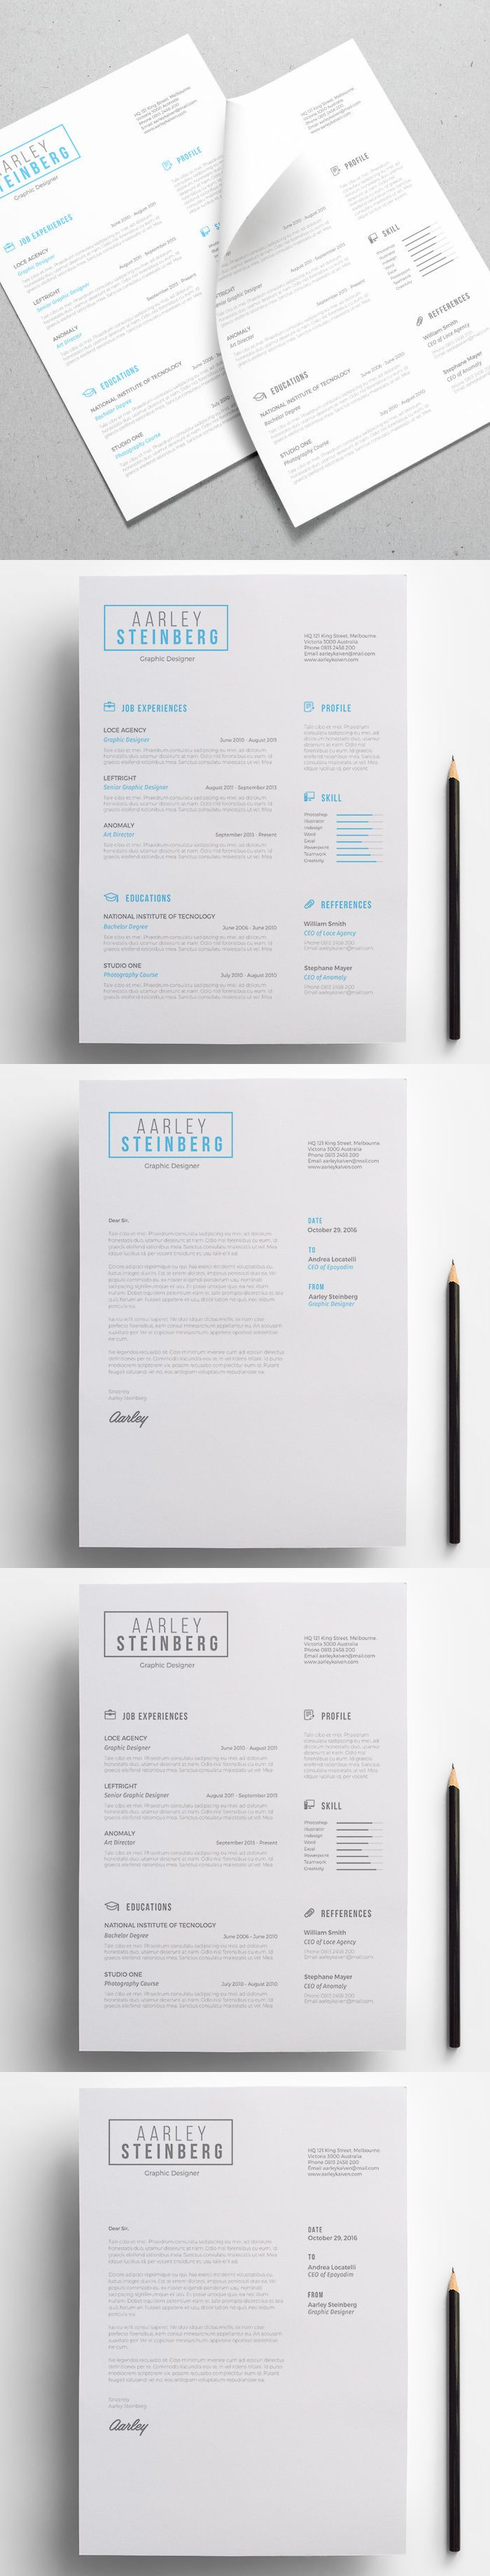 minimal resume is a resume template with simple and clean design  template psd  ms word  docx